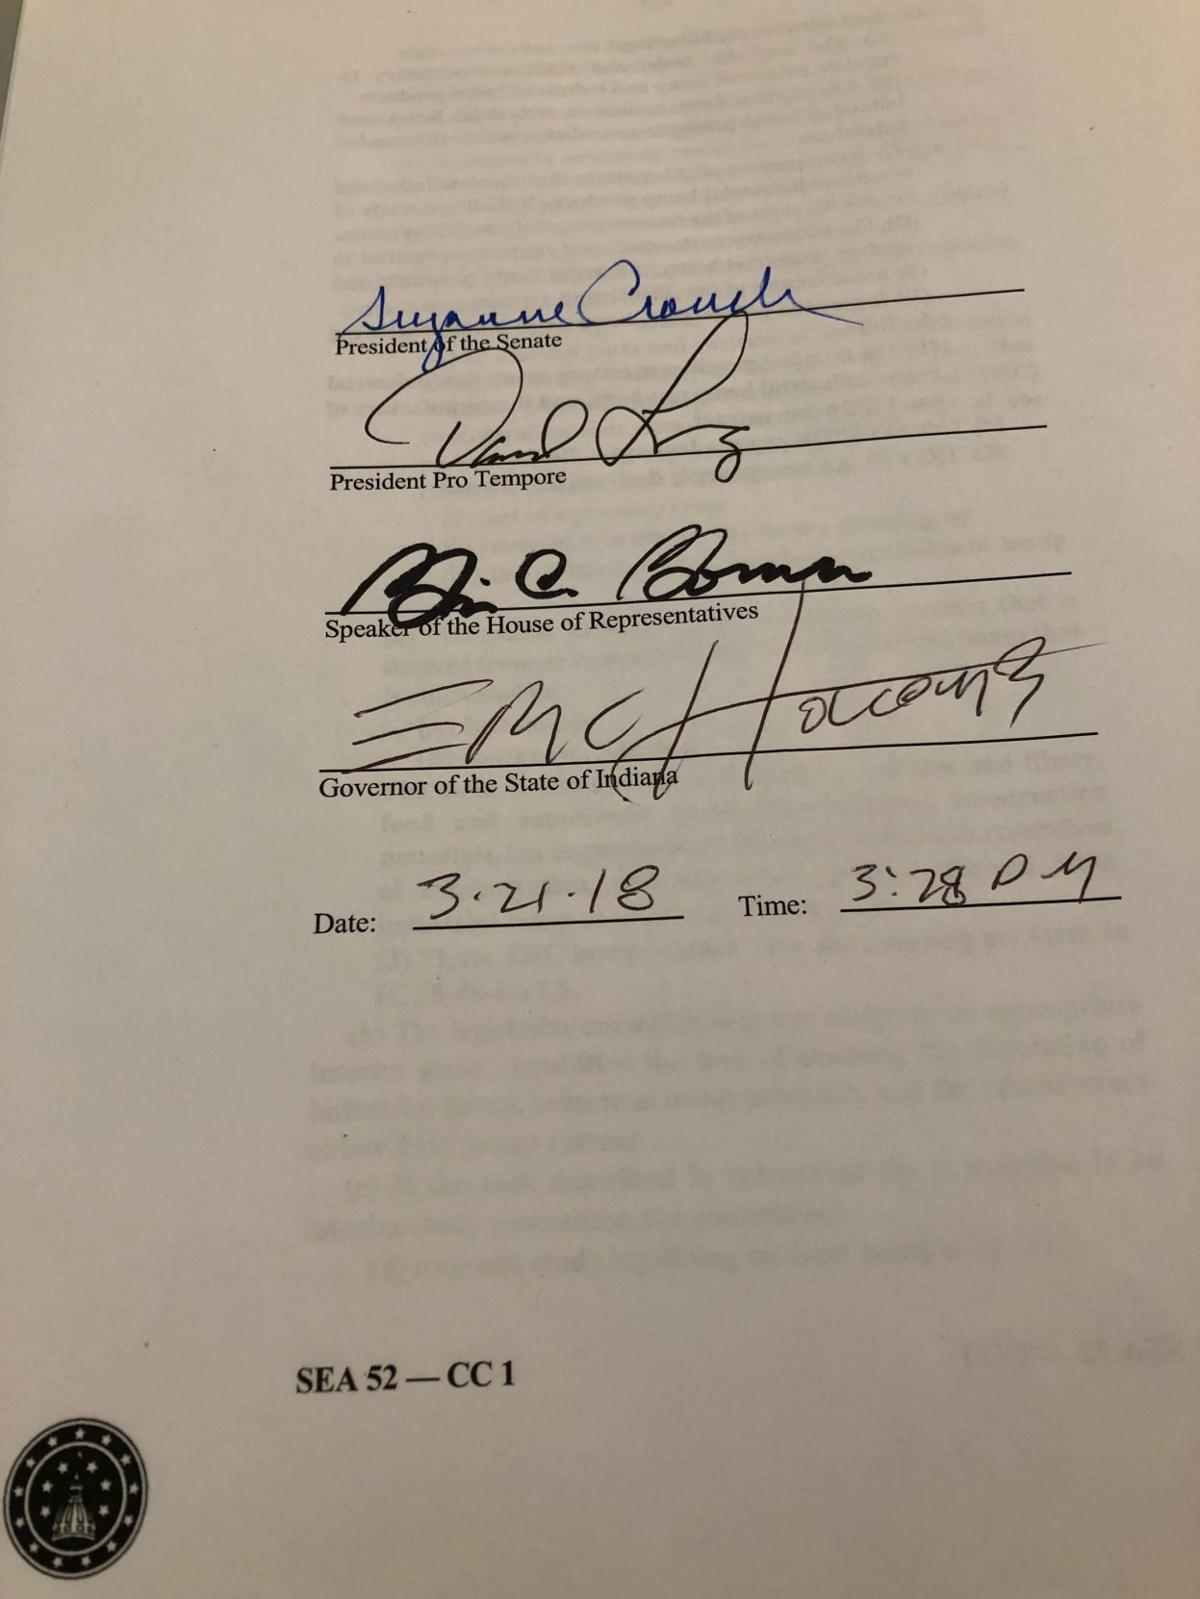 Here it is — Gov. Eric Holcomb's signature that officially legalized CBD oil in Indiana